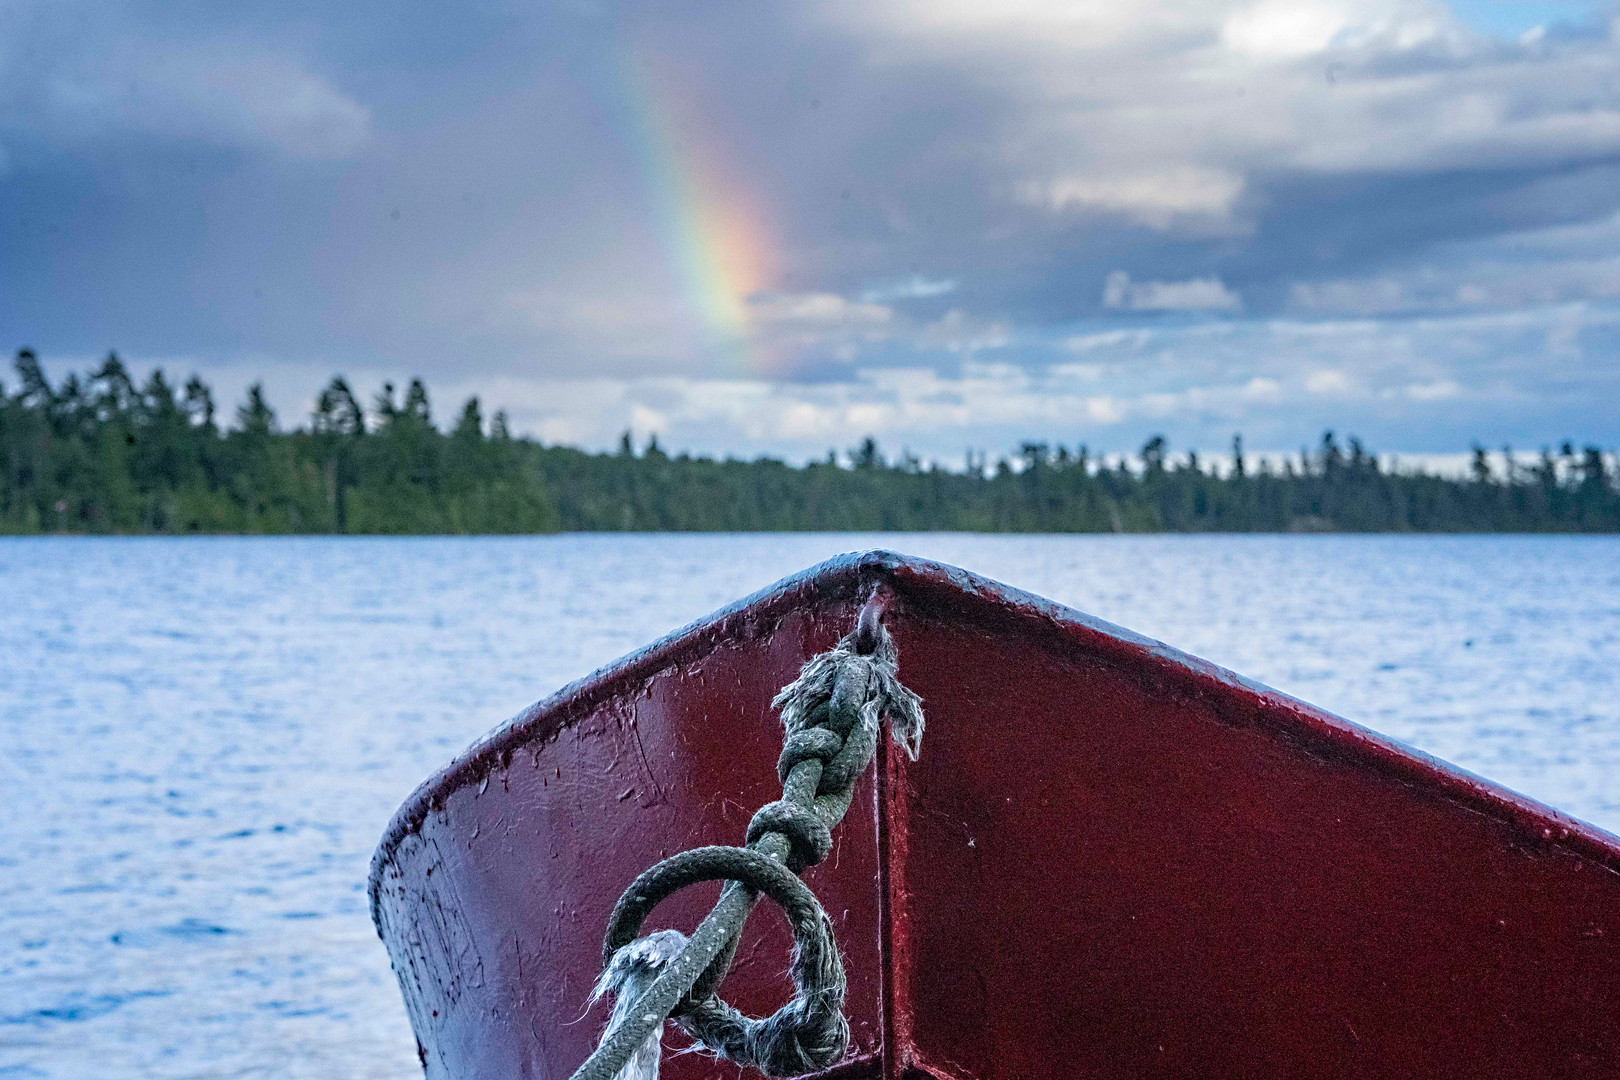 Red steel boat and rainbow